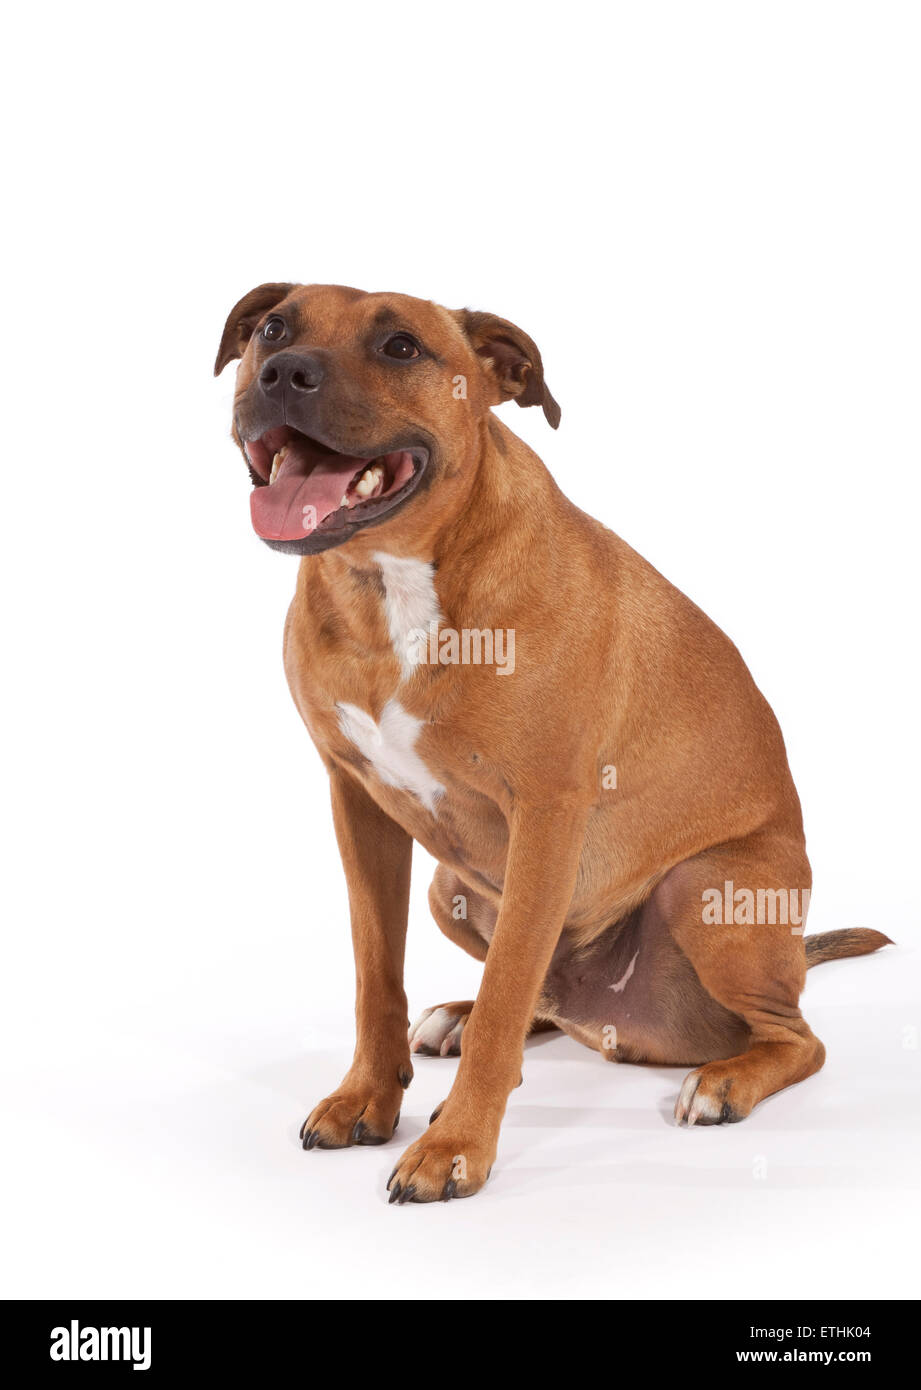 Staffordshire Bull Terrier Dog aged 3 years - Stock Image